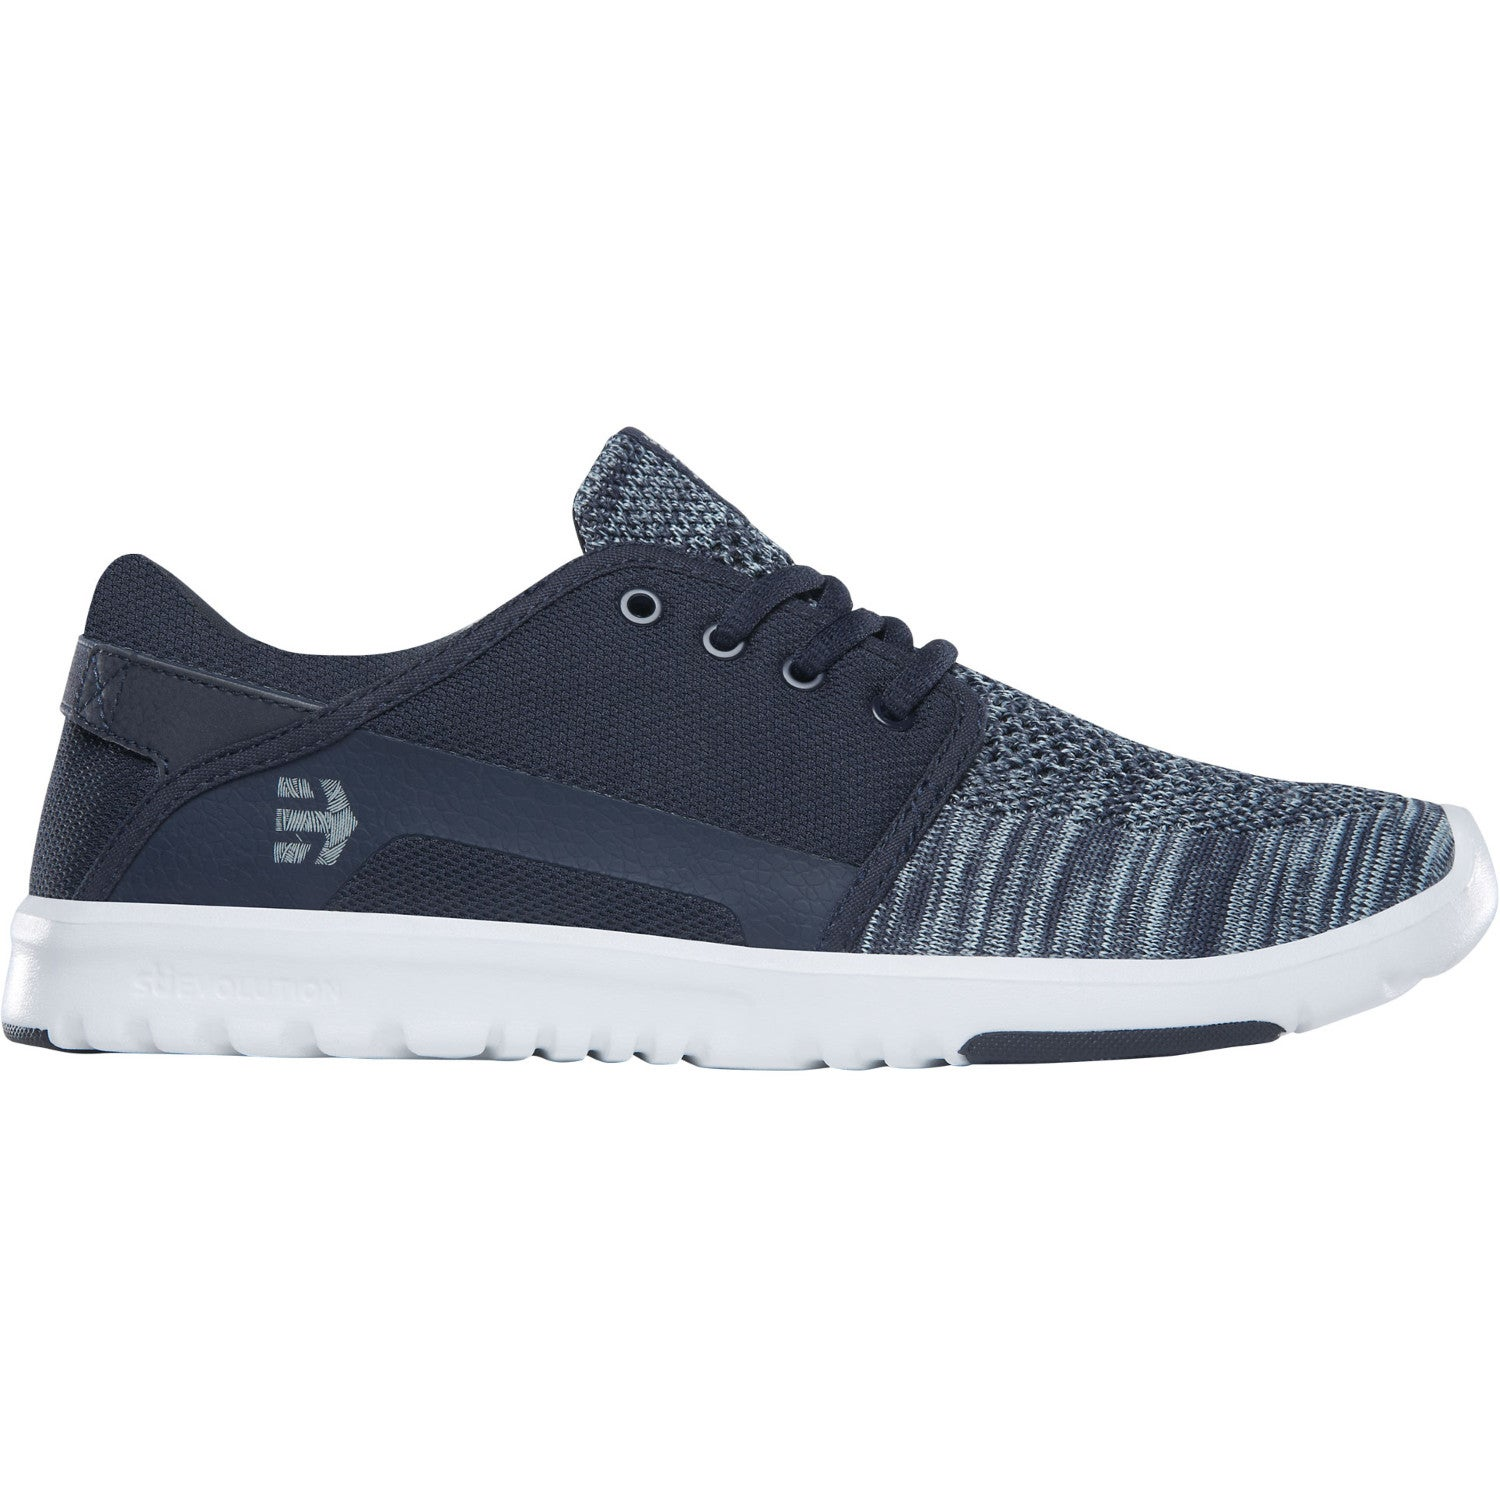 Navy Homme Toutes Bomb Yarn Etnies Tailles Grey Chaussure Scout Chaussures q18YwxntU